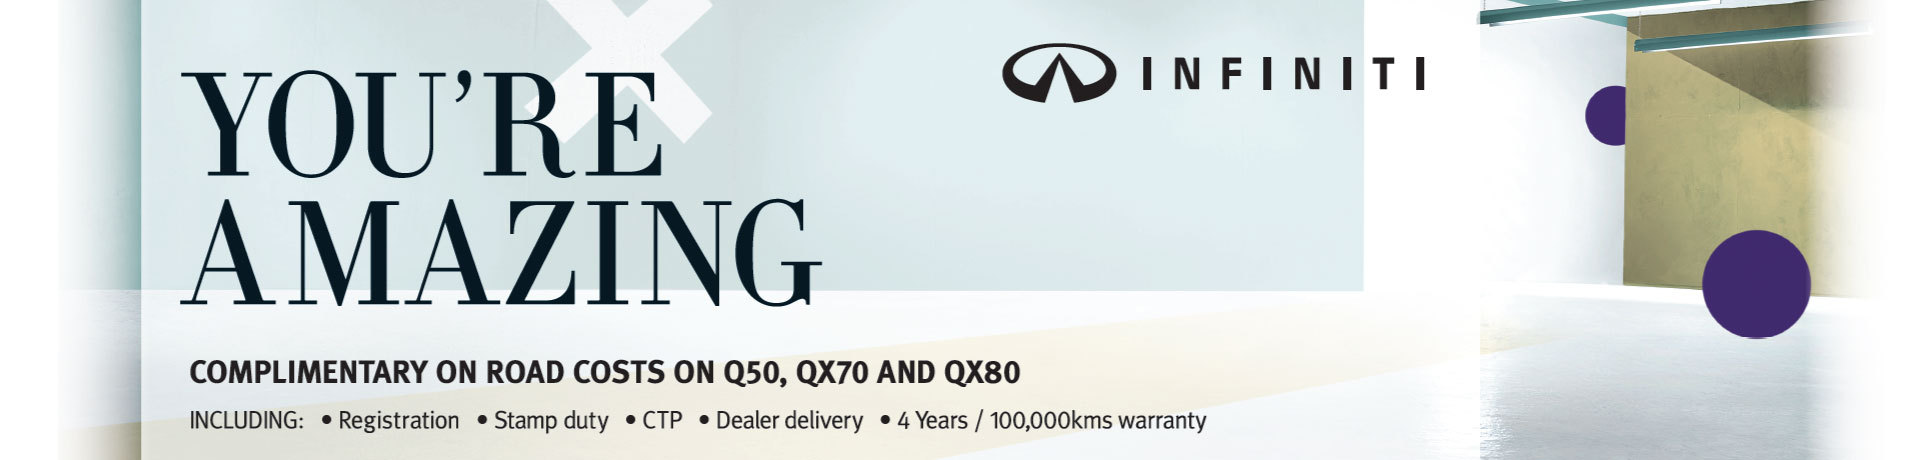 Infiniti Complimentary On-Roads Offer